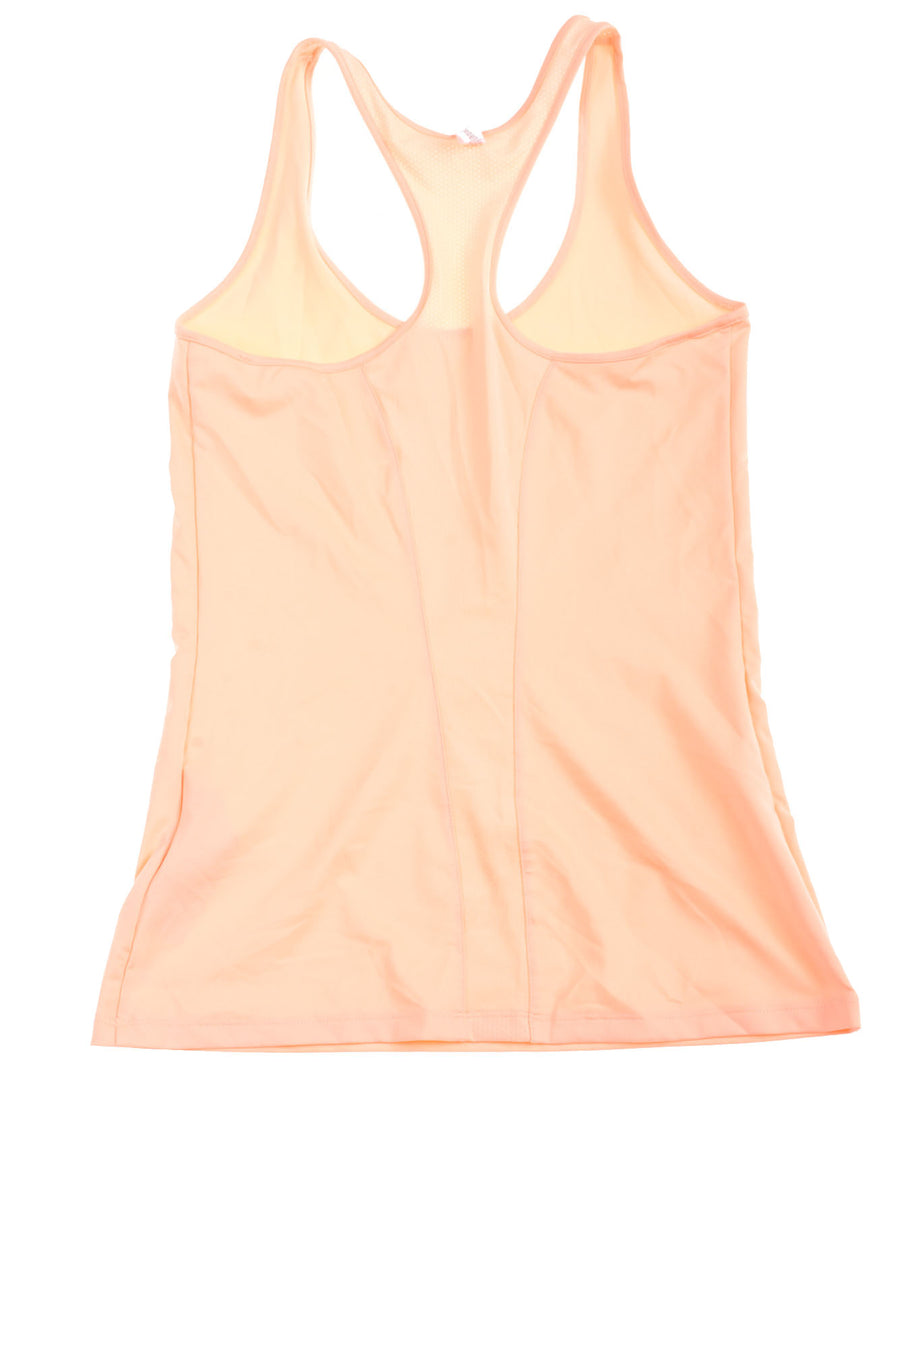 USED Under Armour Women's Top X-Small Orange